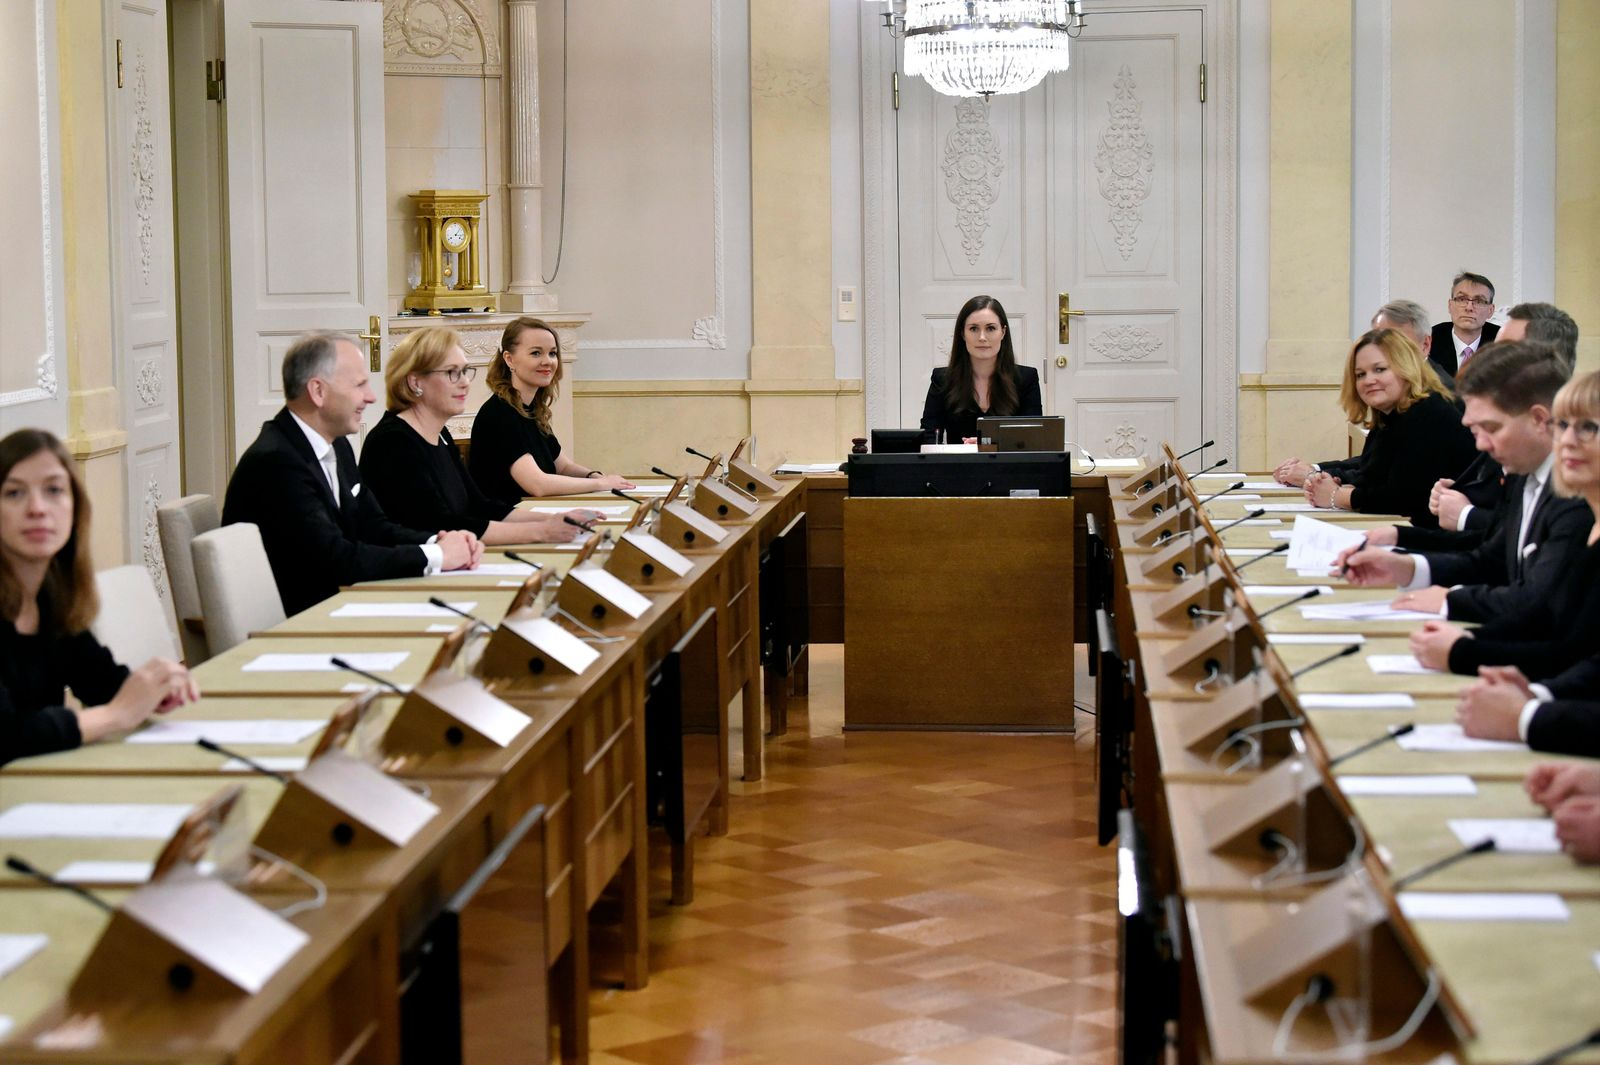 Prime Minister of Finland Sanna Marin, center, chairs her first government meeting in Helsinki, Finland on Tuesday Dec. 10, 2019. Finland's parliament chose Sanna Marin as the country's new prime minister Tuesday, making the 34-year-old the world's youngest sitting head of government. (Jussi Nukari/Lehtikuva via AP)